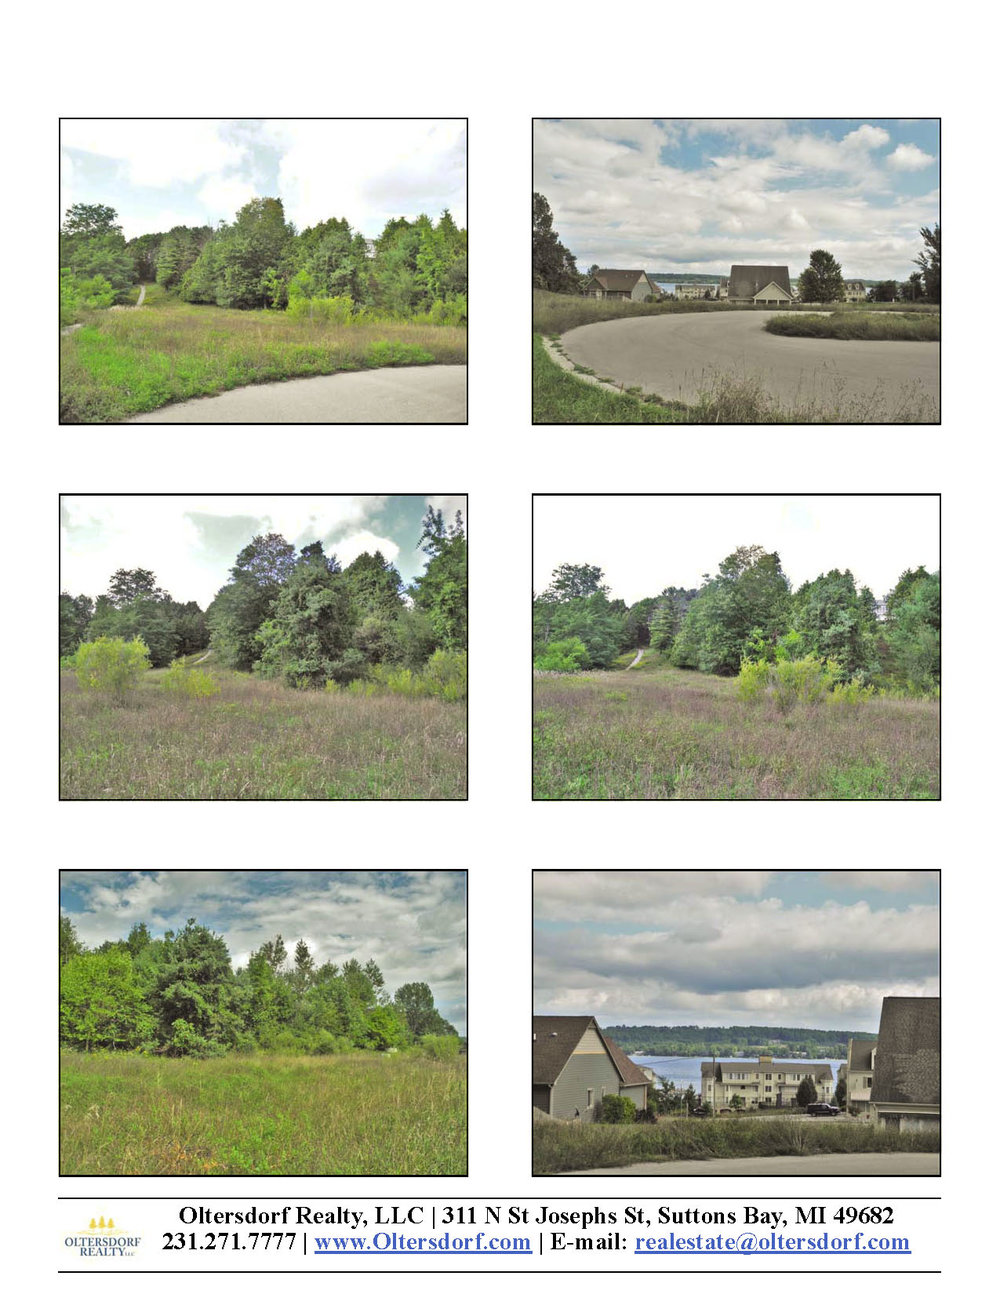 254 W Summerset Court, Village of Suttons Bay vacant lot for sale by Oltersdorf Realty, Suttons Bay Realtors - Marketing Packet (2).jpg